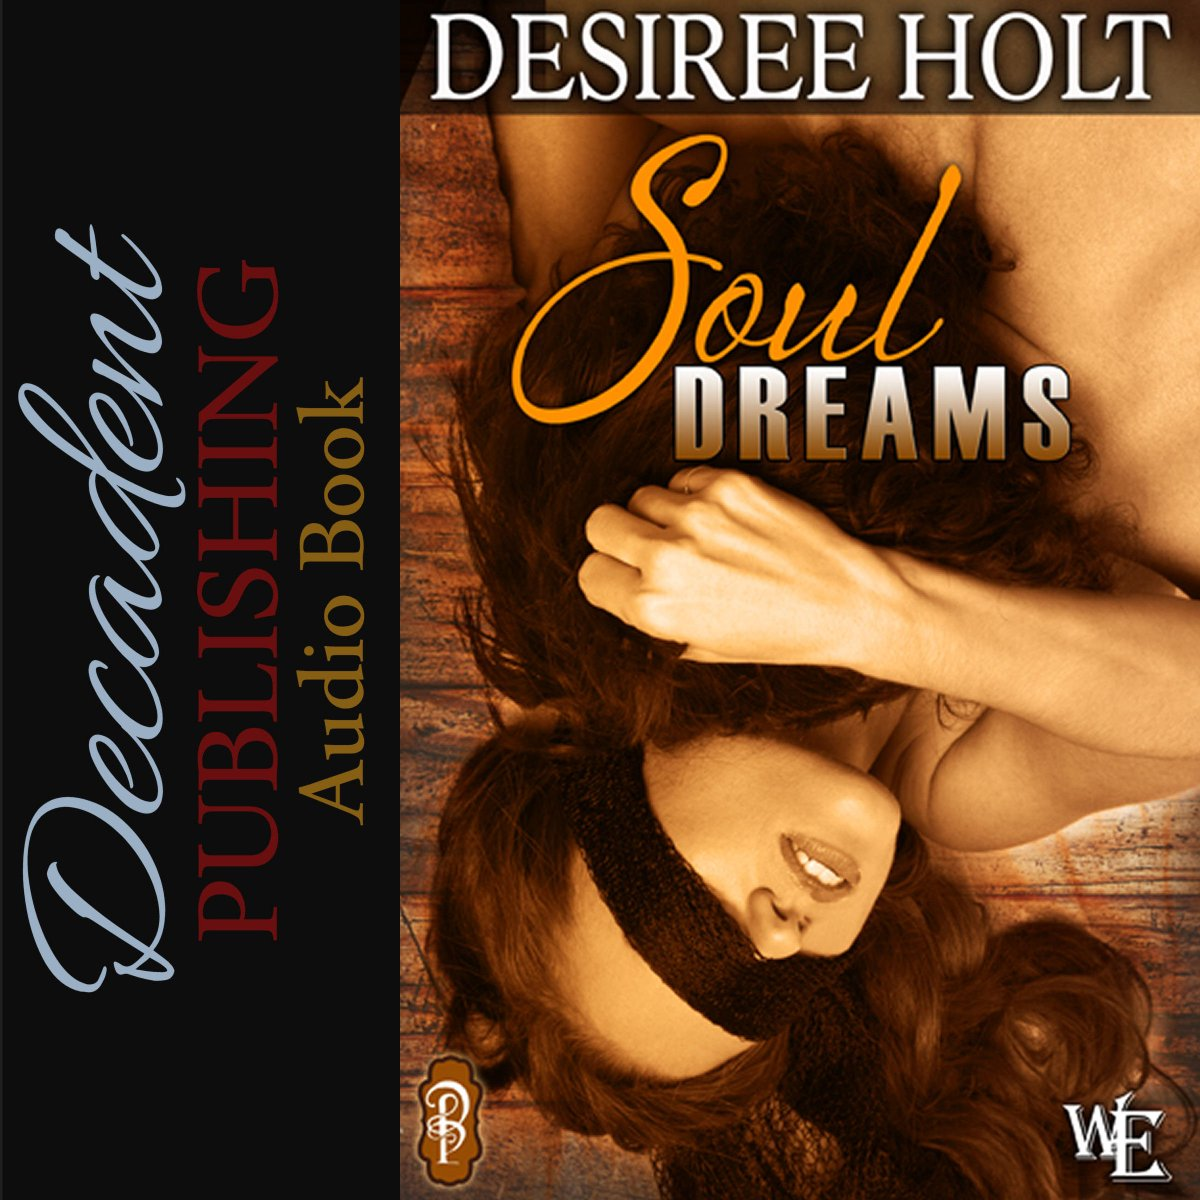 Is everyday life interrupting your reading time? Try an #audiobook! https://t.co/XC6IA5gRnc #romance @desireeholt https://t.co/muz4mOREWz